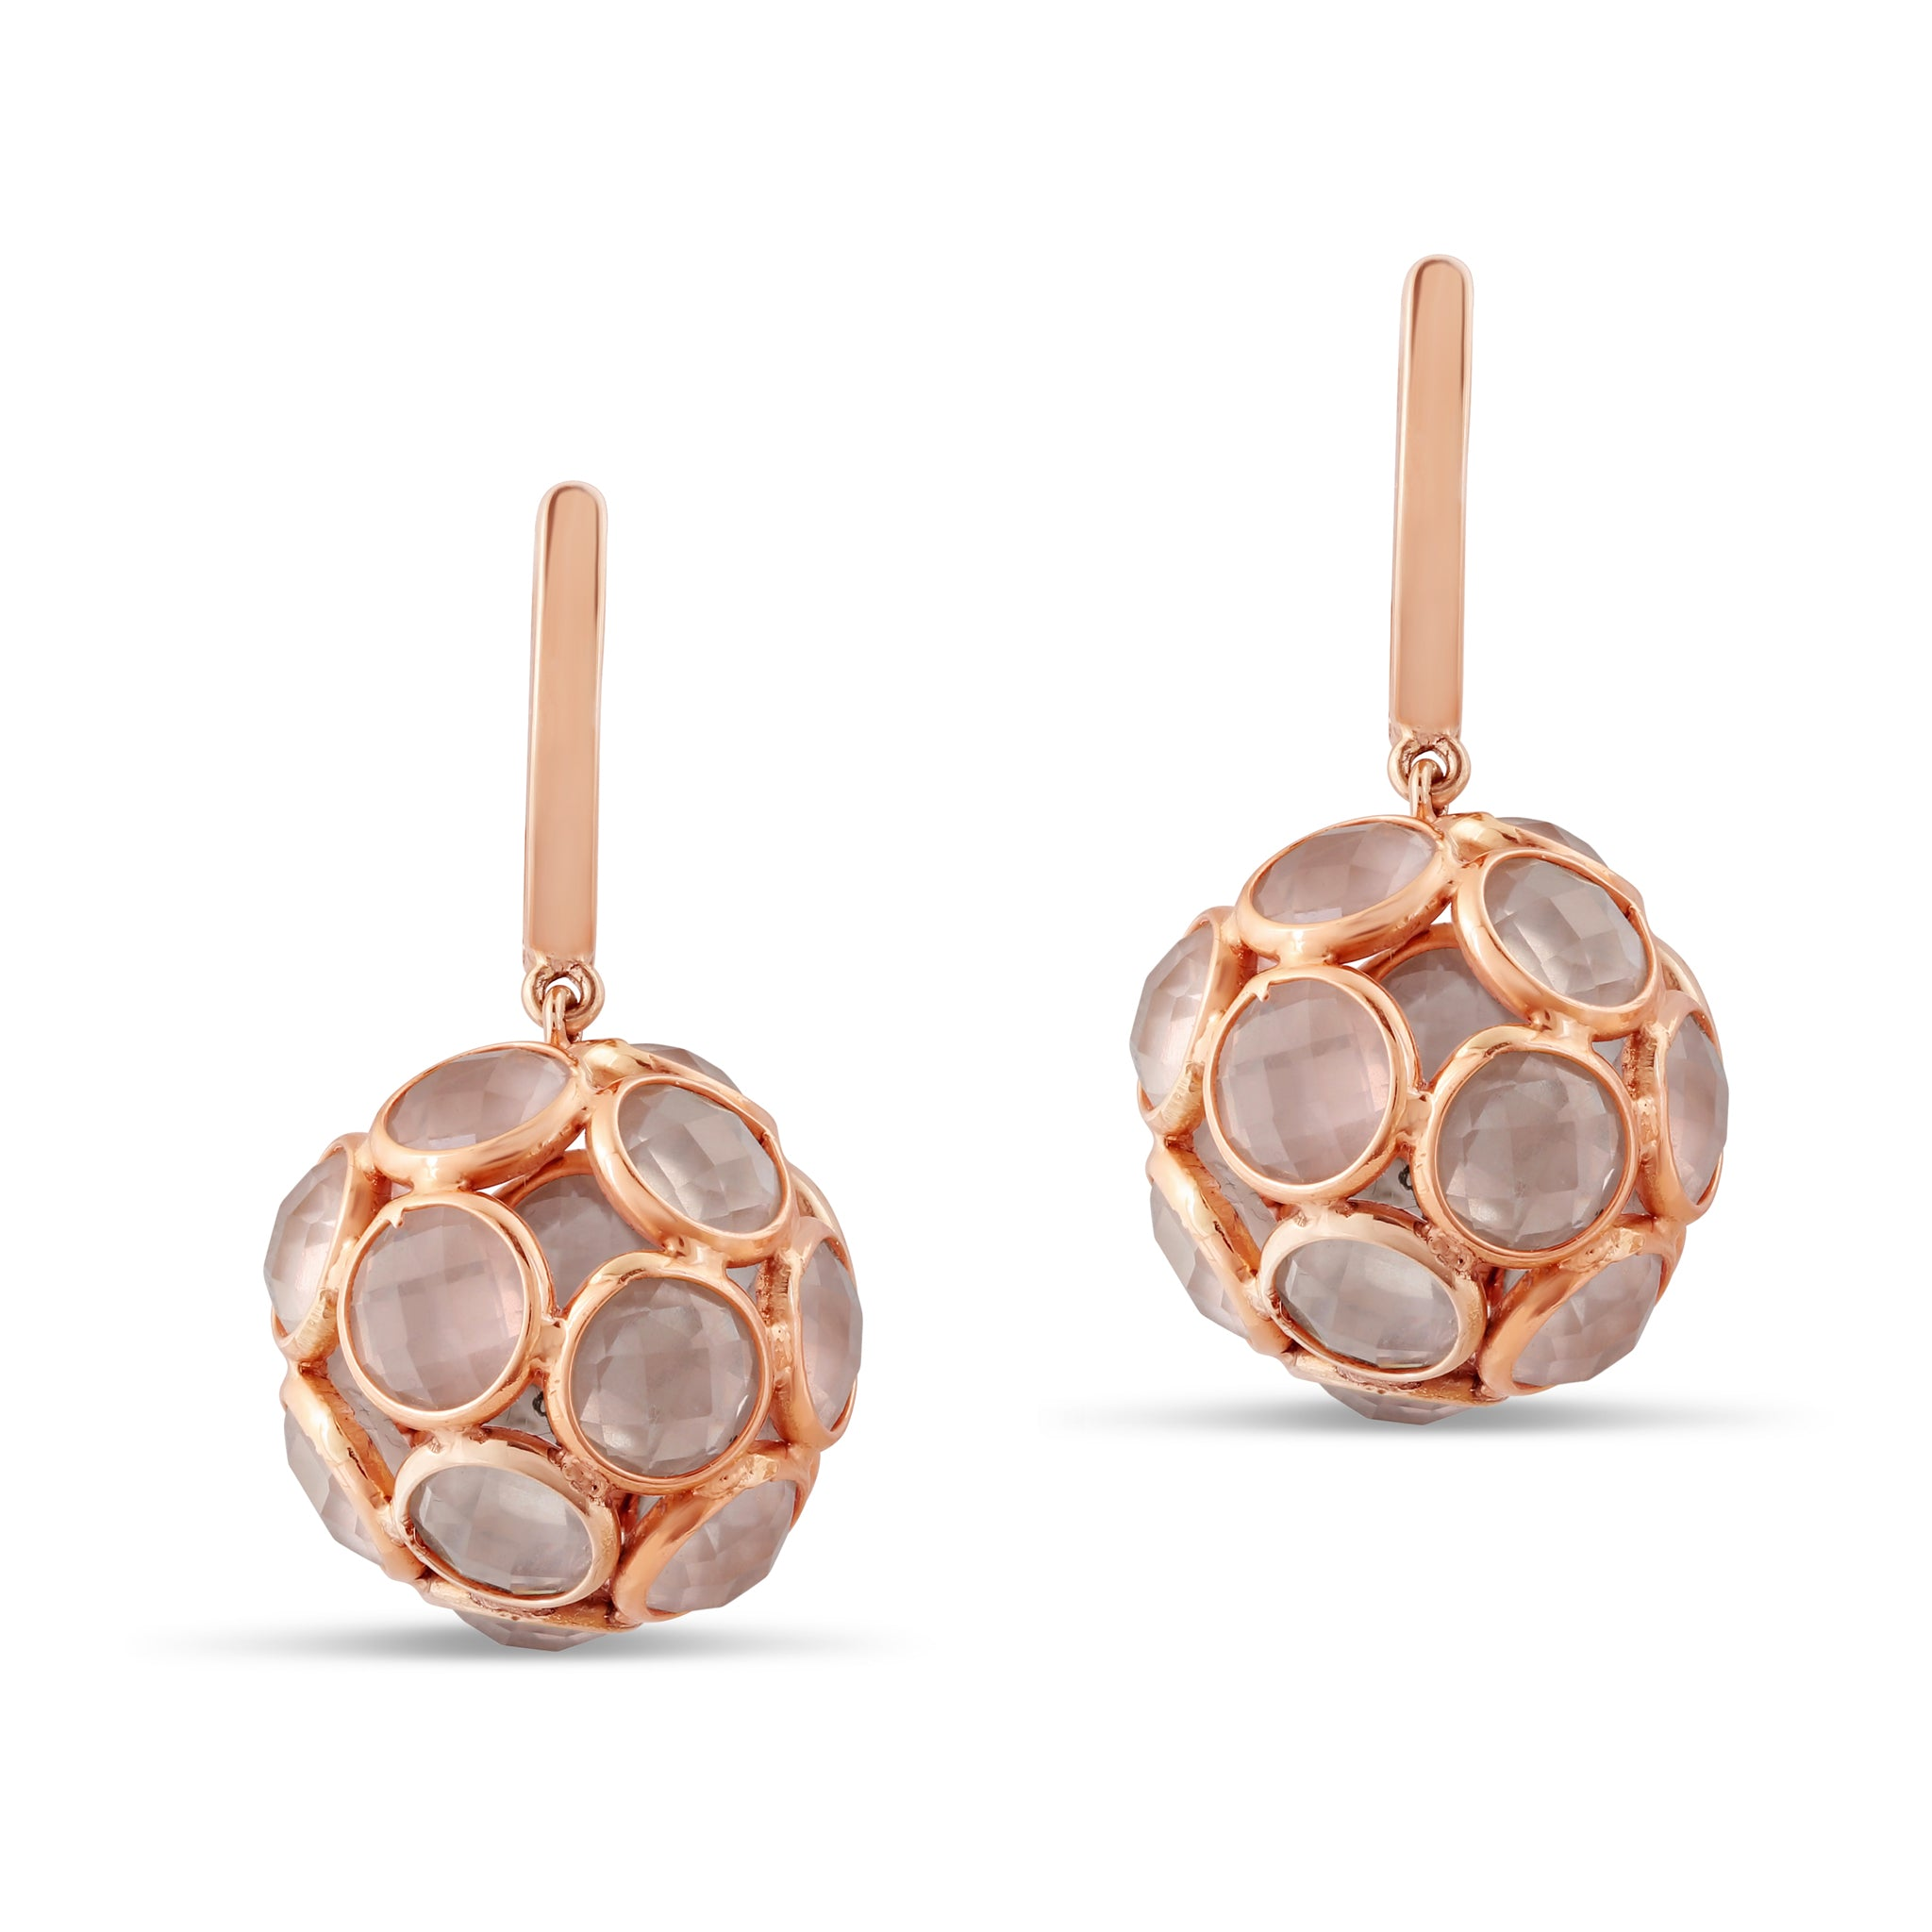 Rose Quartz Sphere Ball Earrings in 18k Rose Gold